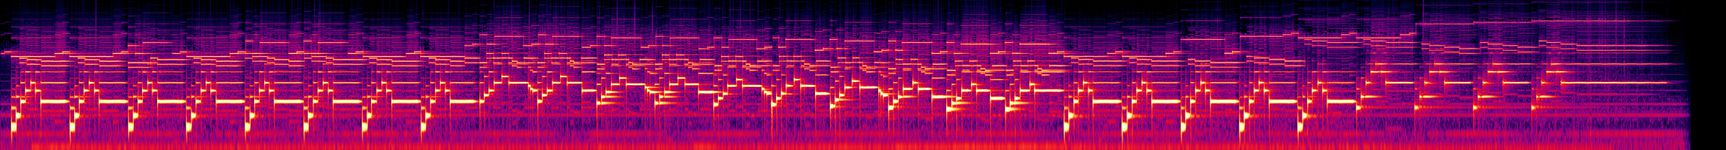 The Pattern Emerges - Spectrogram.jpg